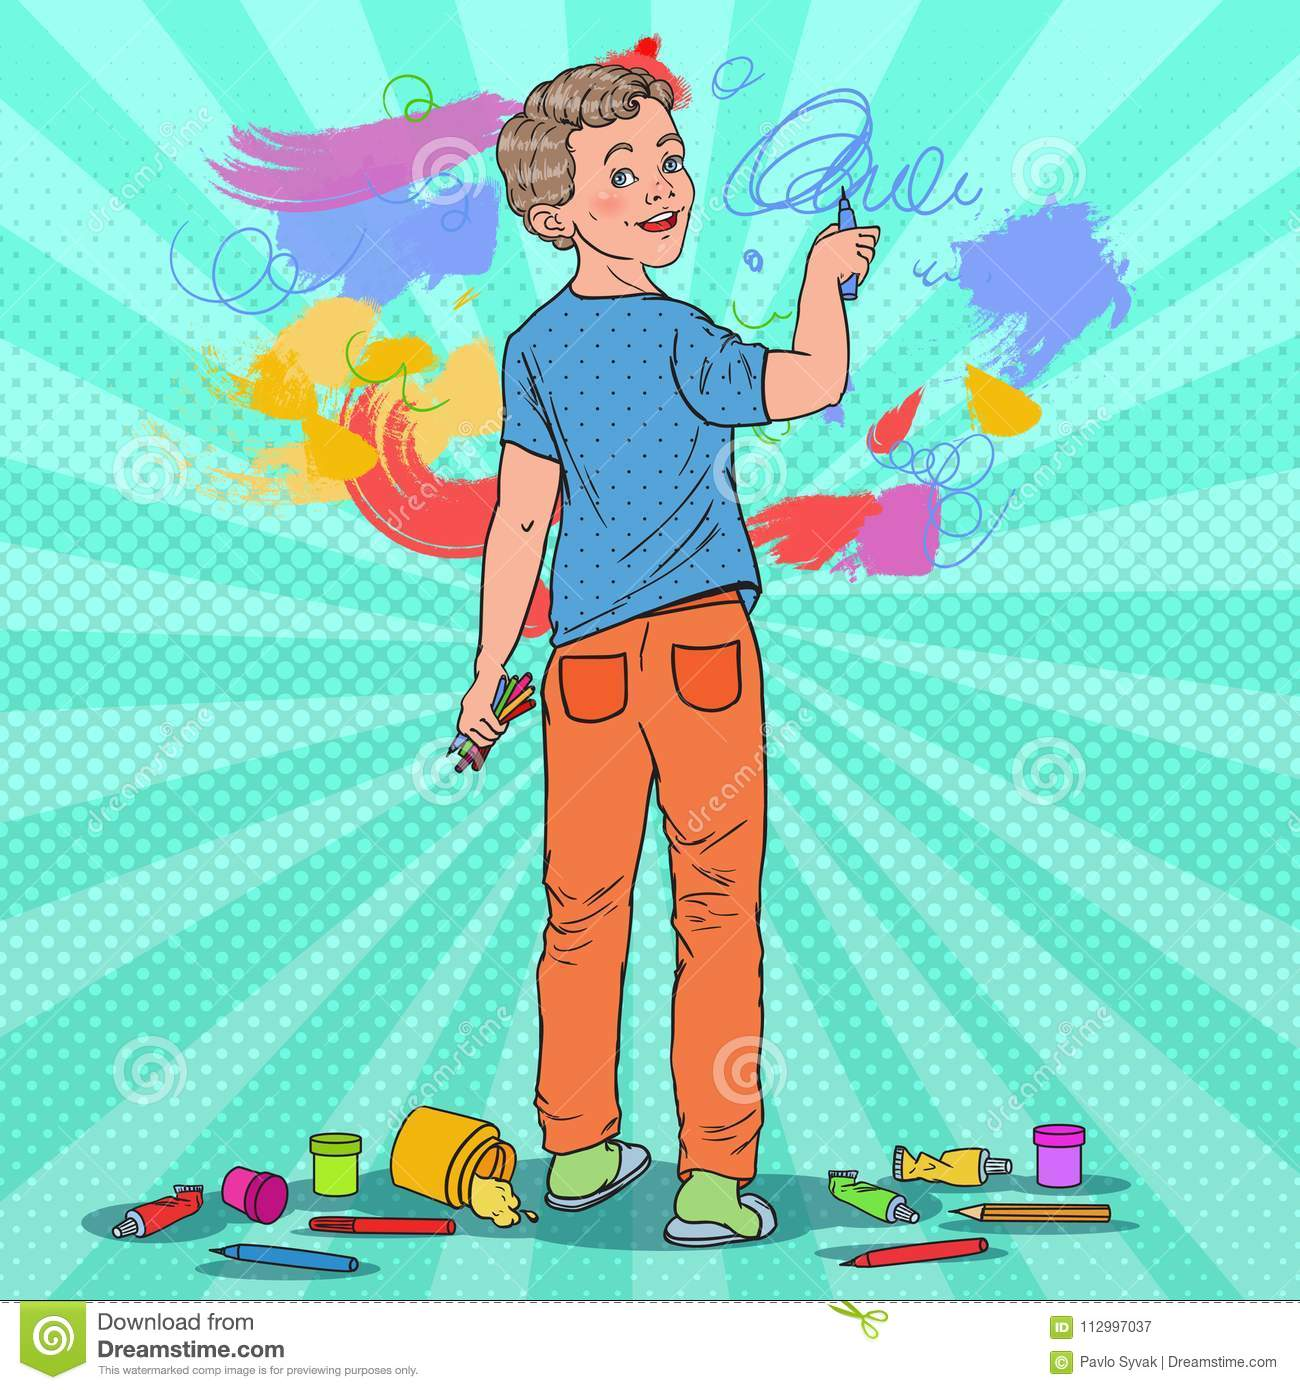 Pop Art Creative Boy Drawing On The Wall Joyful Child Painting With